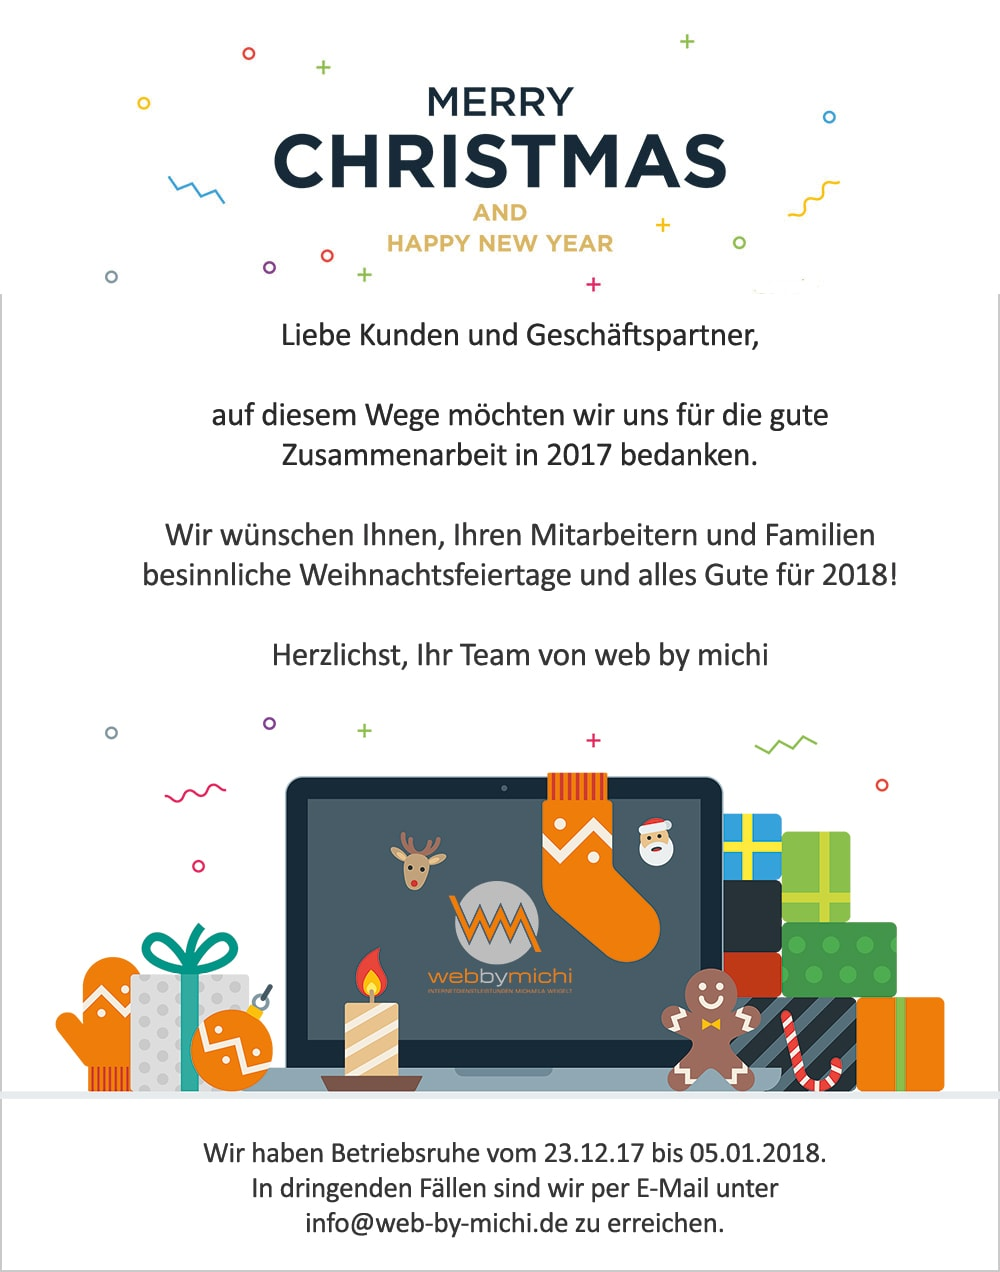 Weihnachten-web-by-michi